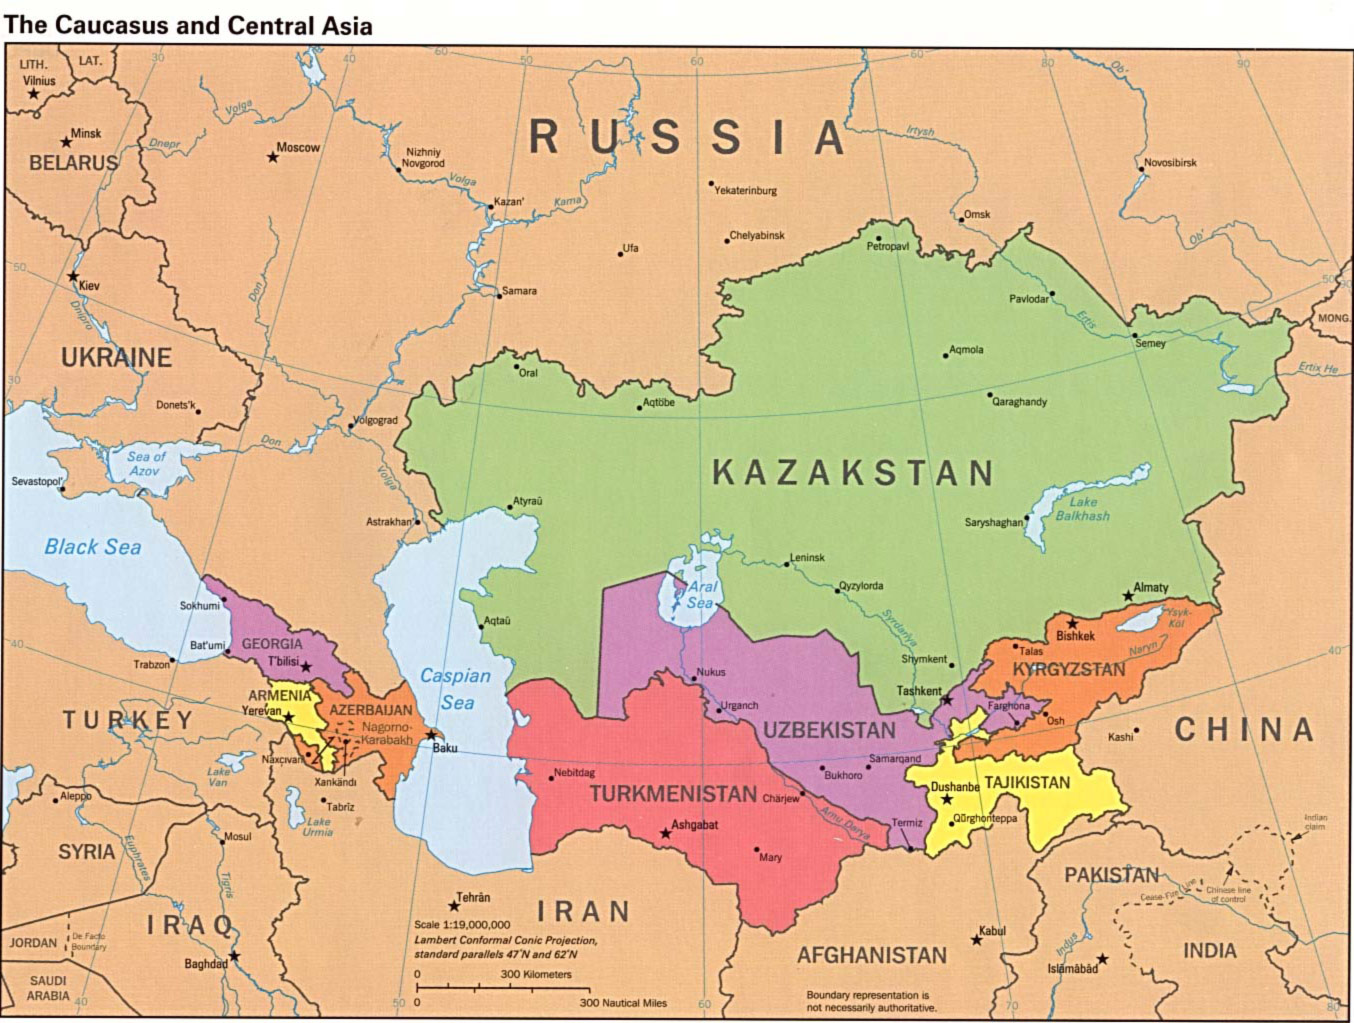 Caucasus Central Asia Political 1995 large map